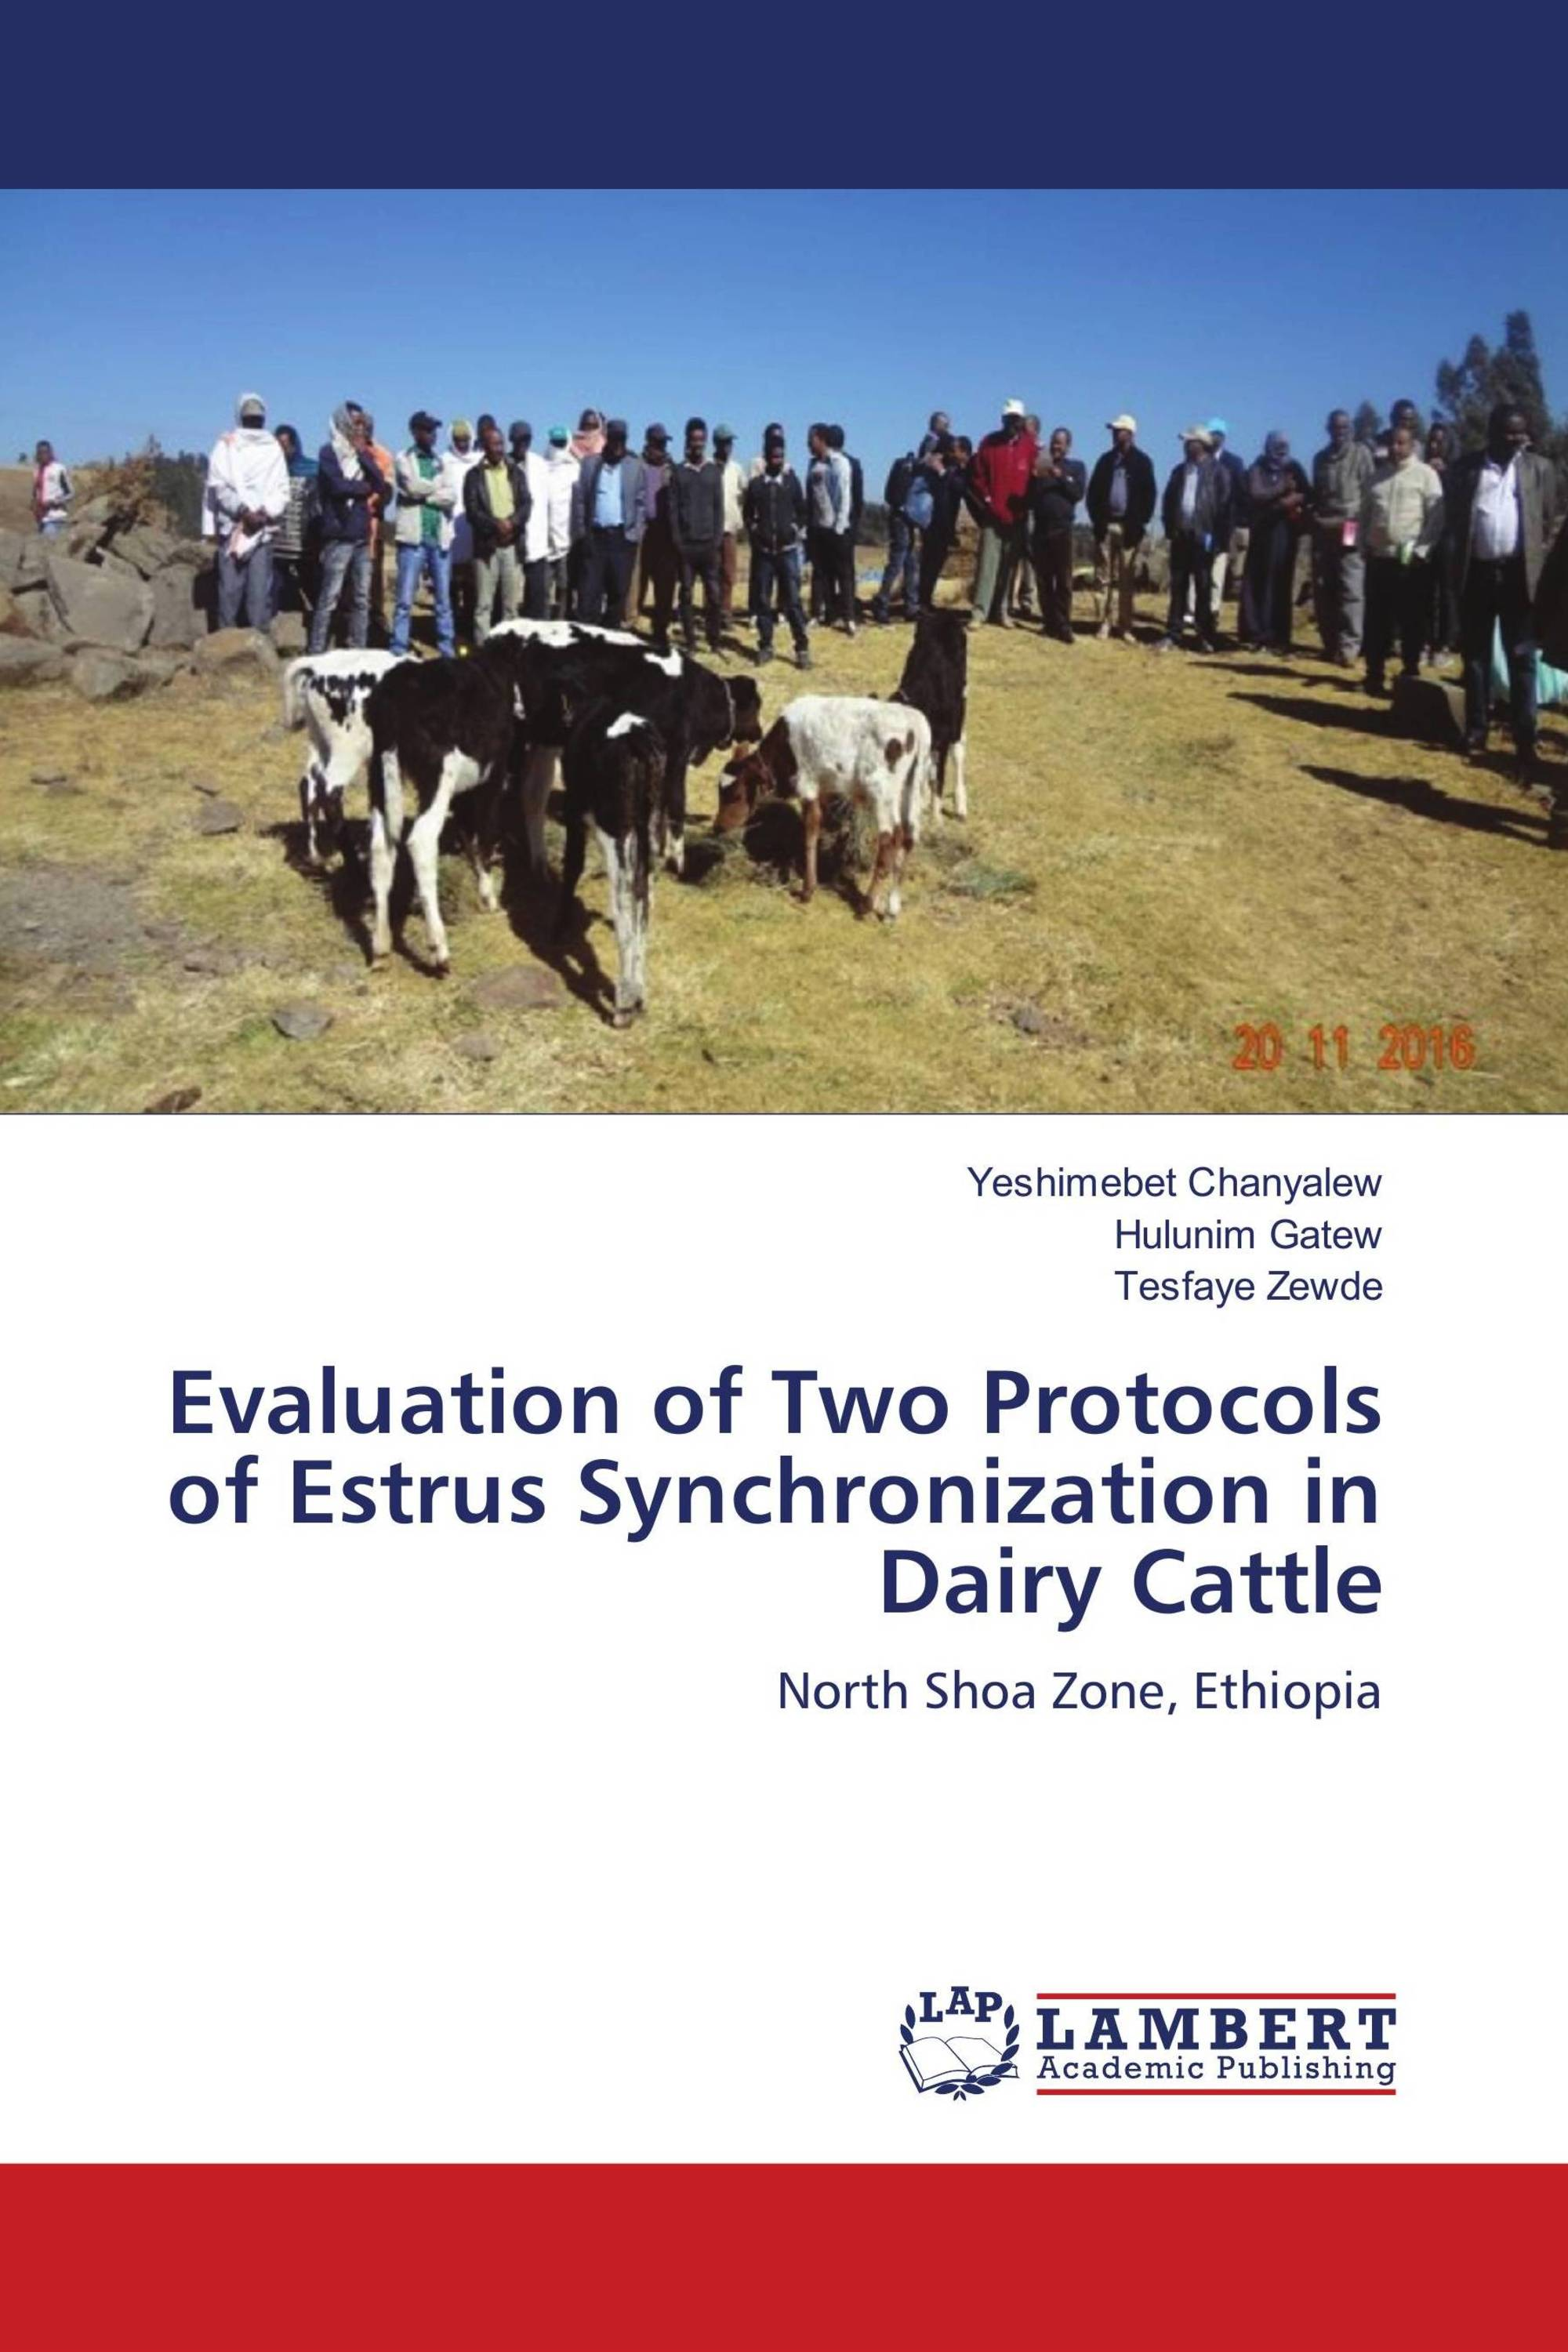 Evaluation of Two Protocols of Estrus Synchronization in